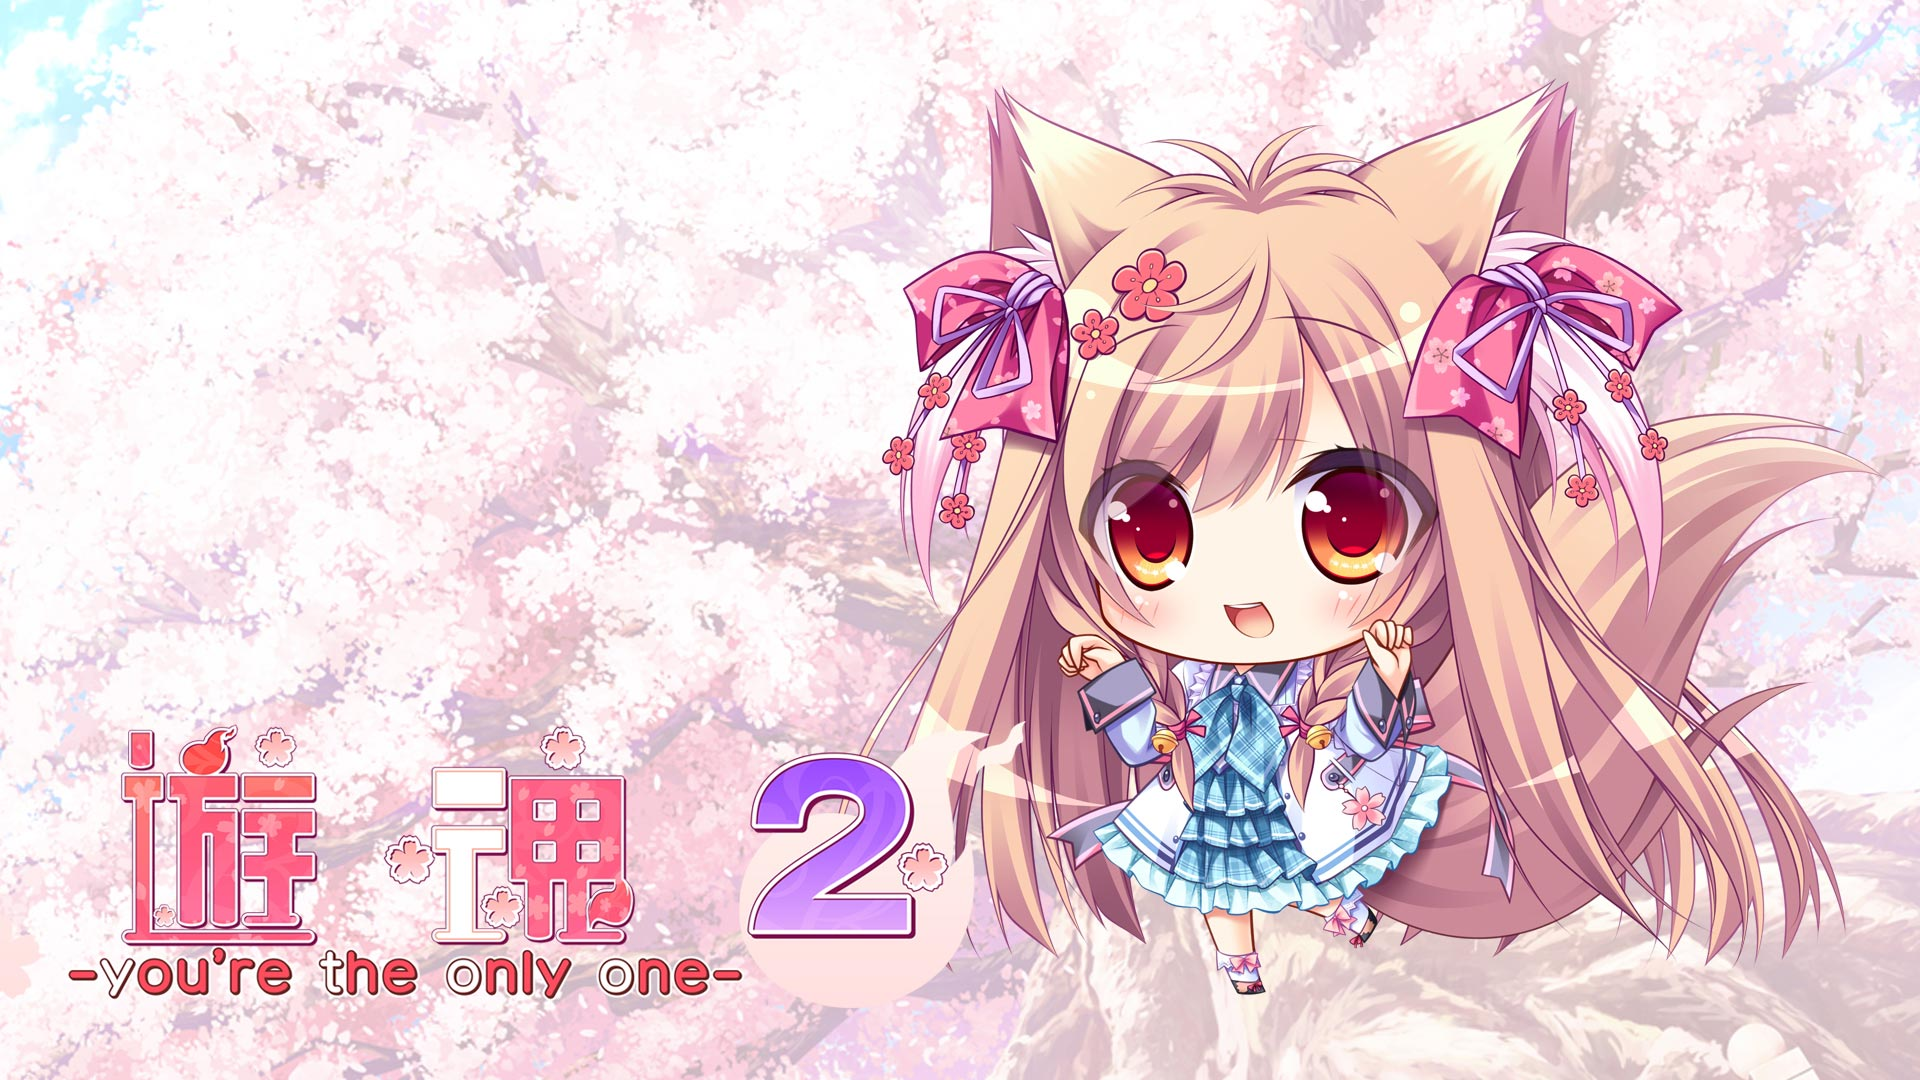 Steam Card Exchange :: Showcase :: Tayutama 2 -you're the only one-